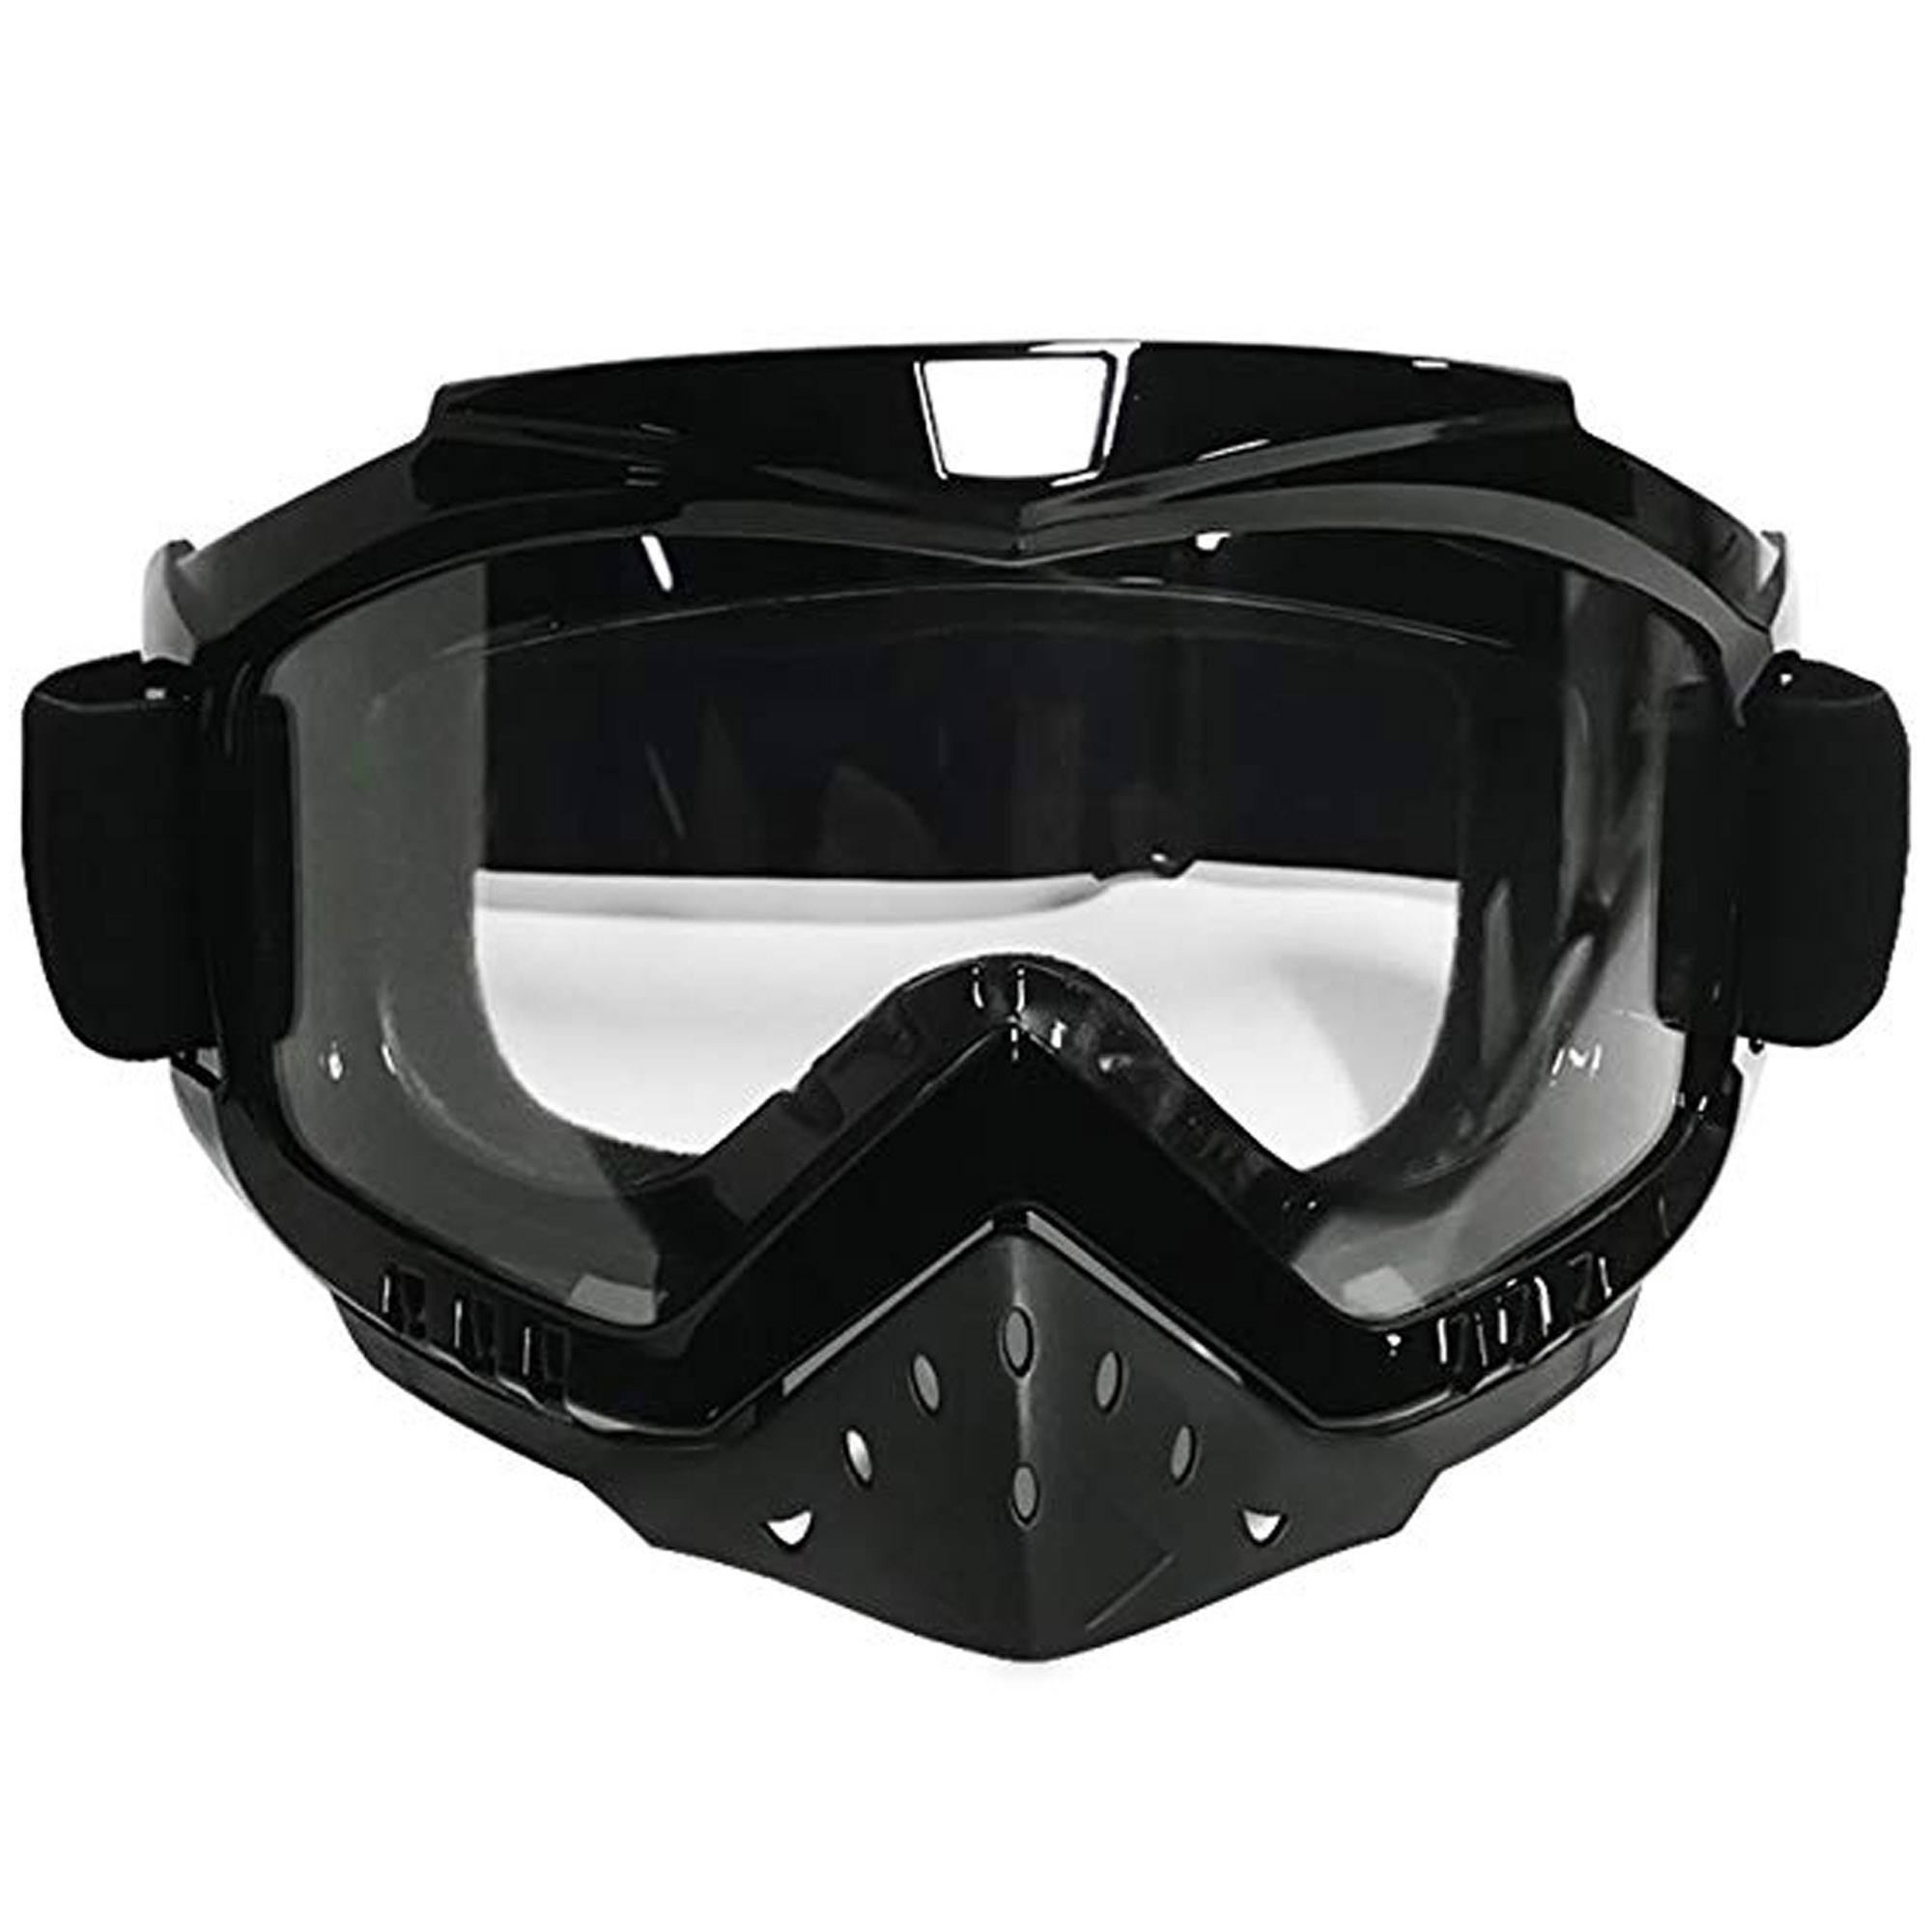 Motocross Motorcycle Eyewear Goggles Bike Racing Windproof Cycling Glasses